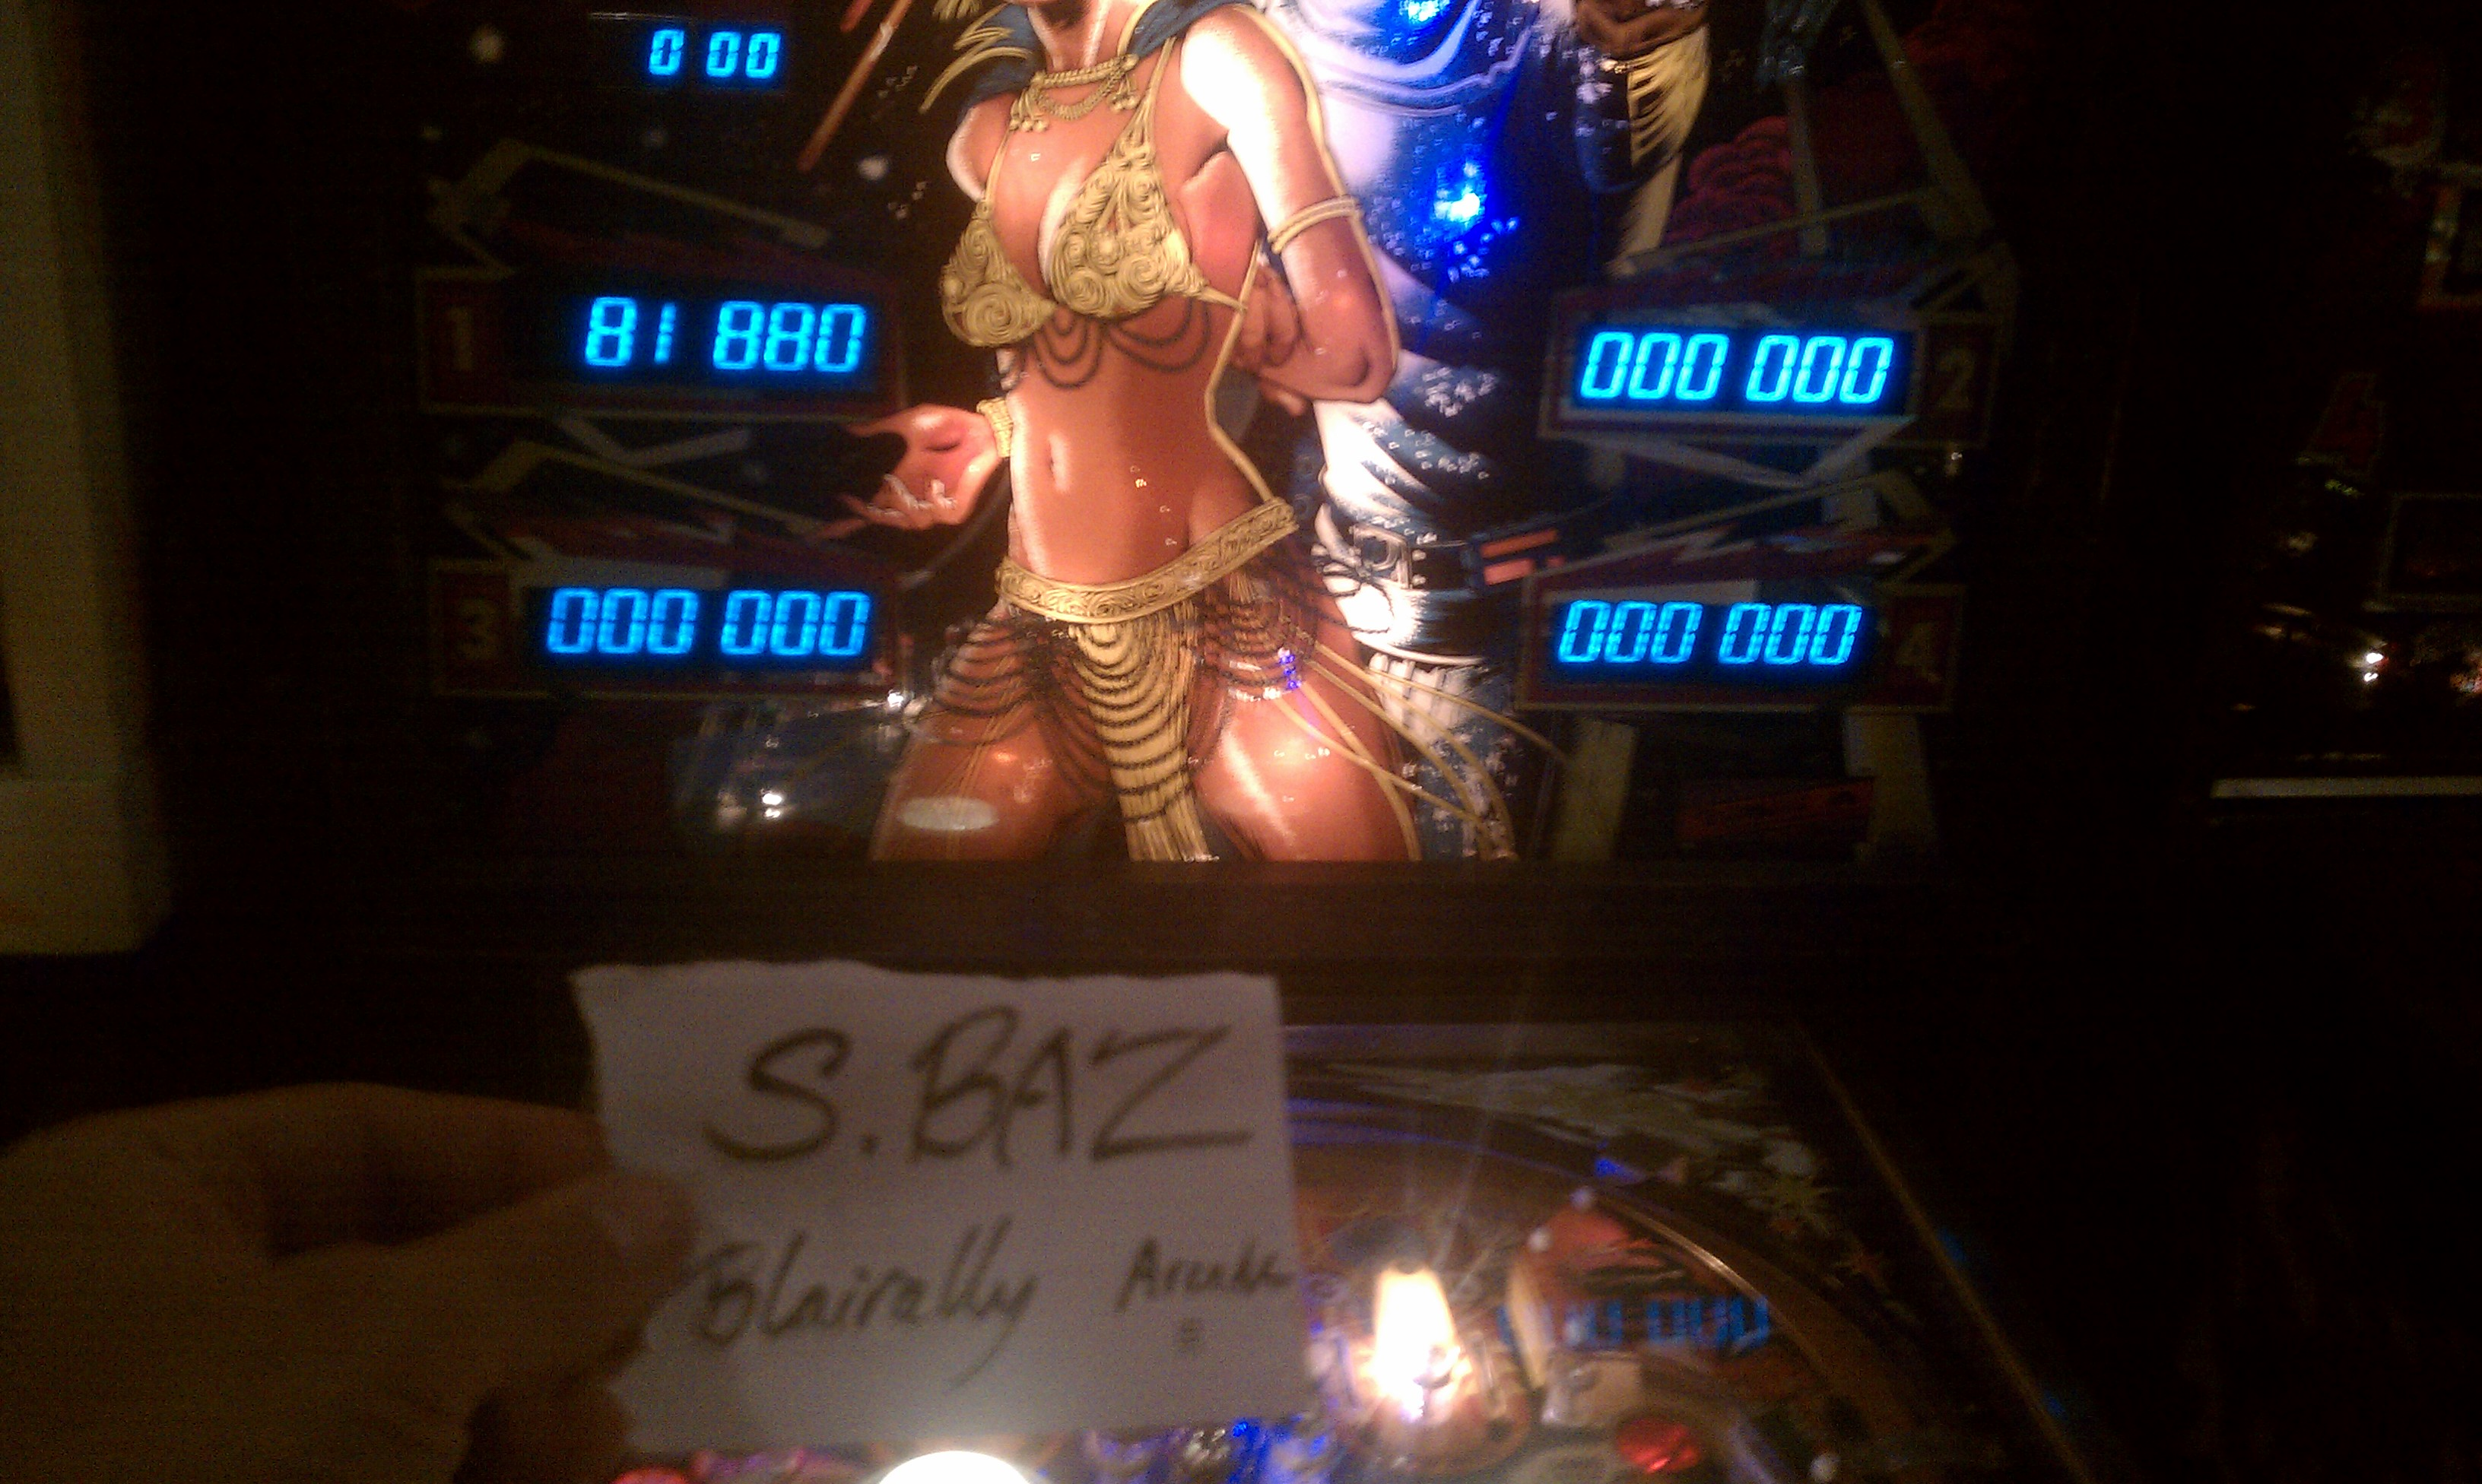 S.BAZ: Buck Rogers (Pinball: 3 Balls) 81,880 points on 2016-04-05 17:21:46